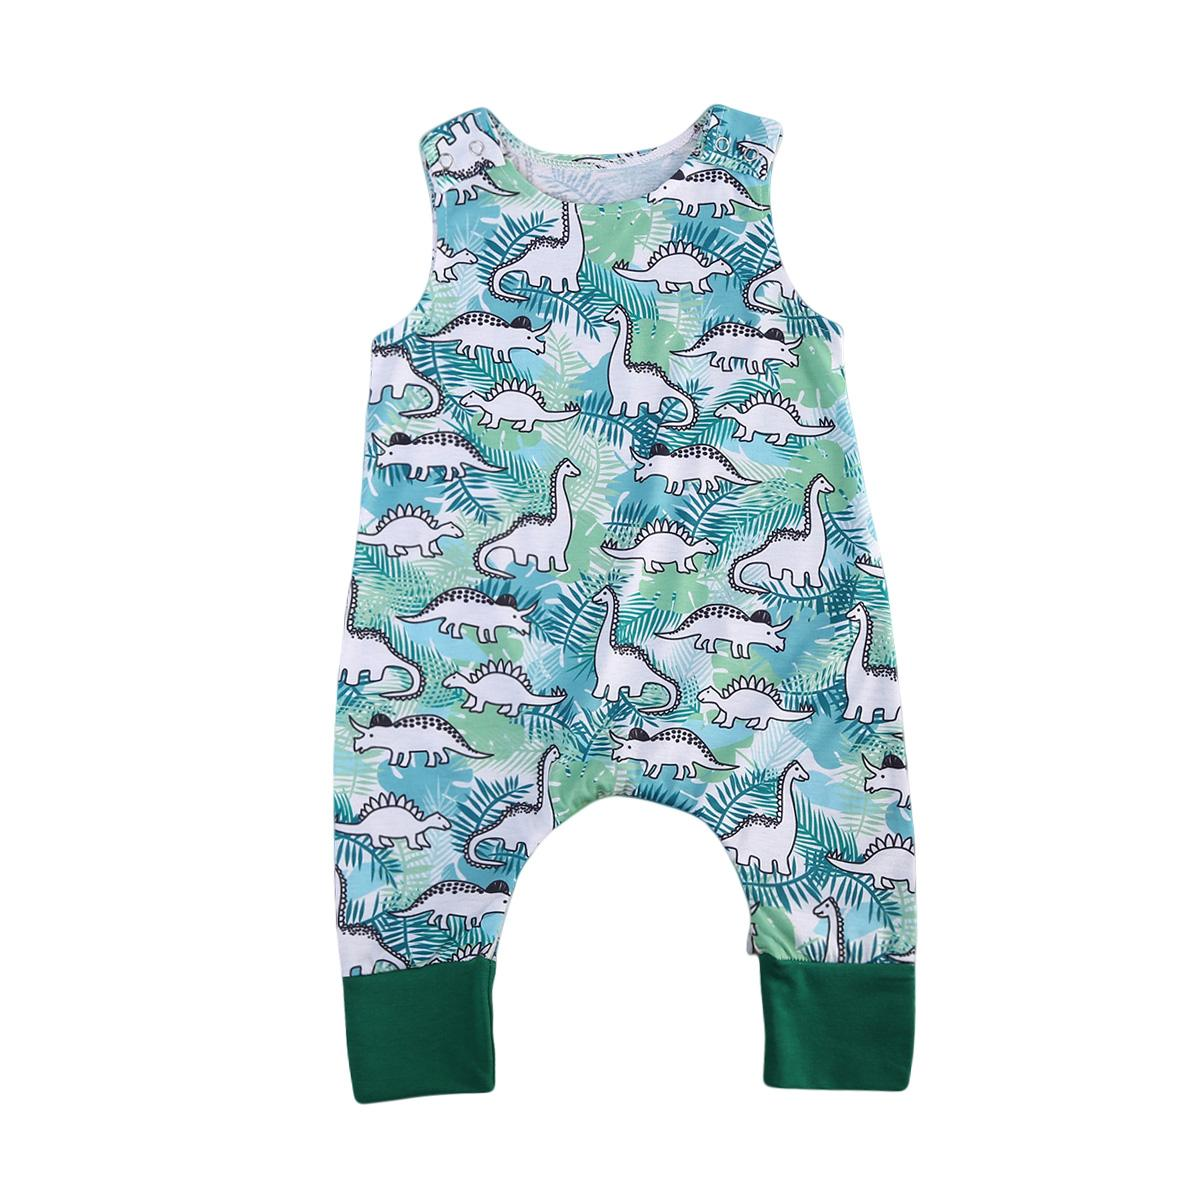 ea2b12f73 2019 Newborn Infant Baby Boys Dinosaur Romper Jumpsuit Sleeveless Green Kids  Outfit Bodysuit Boutique Summer Casual Kid Clothing From Bonne_kid, ...